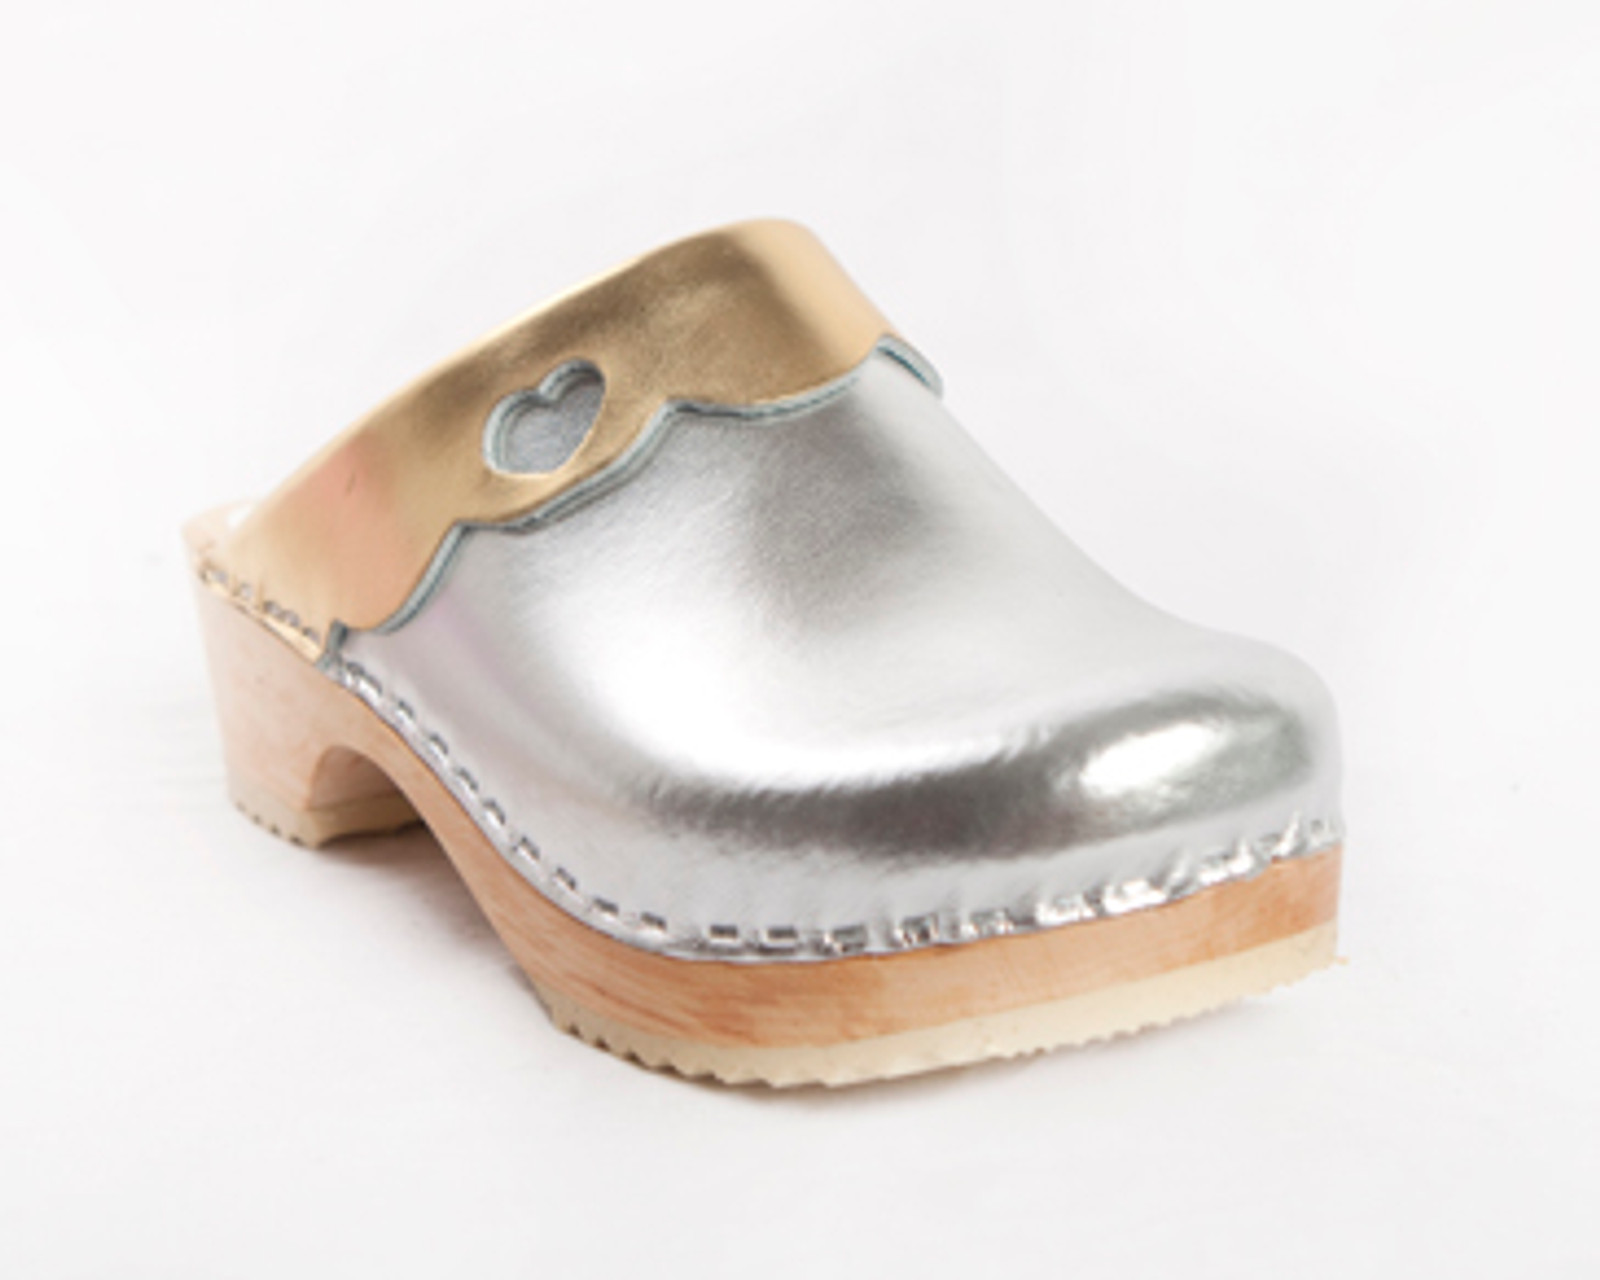 Silver and Gold Metallic Leather with Natural Base